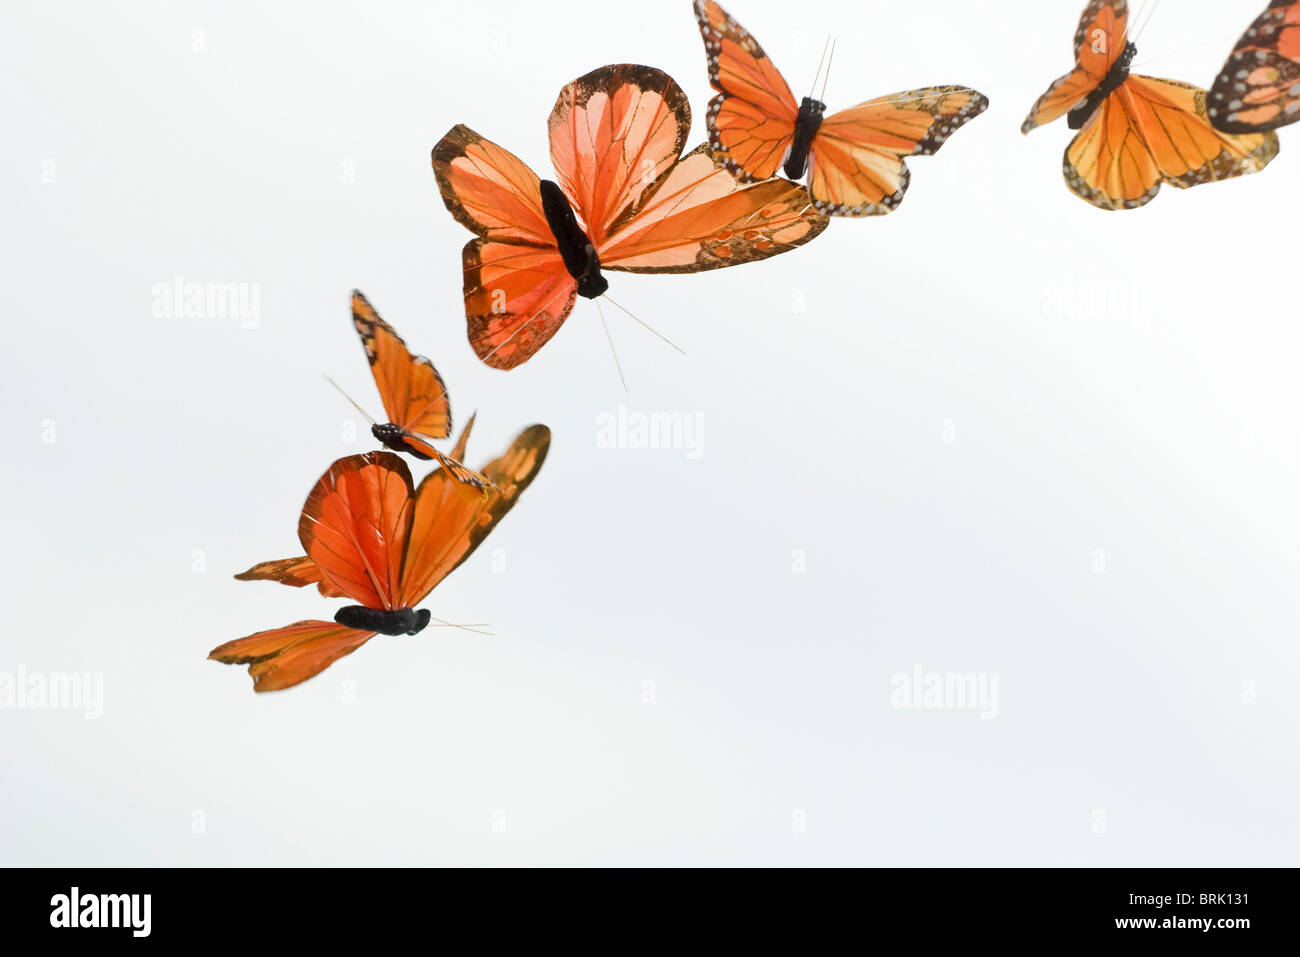 Artificial butterflies flying - Stock Image